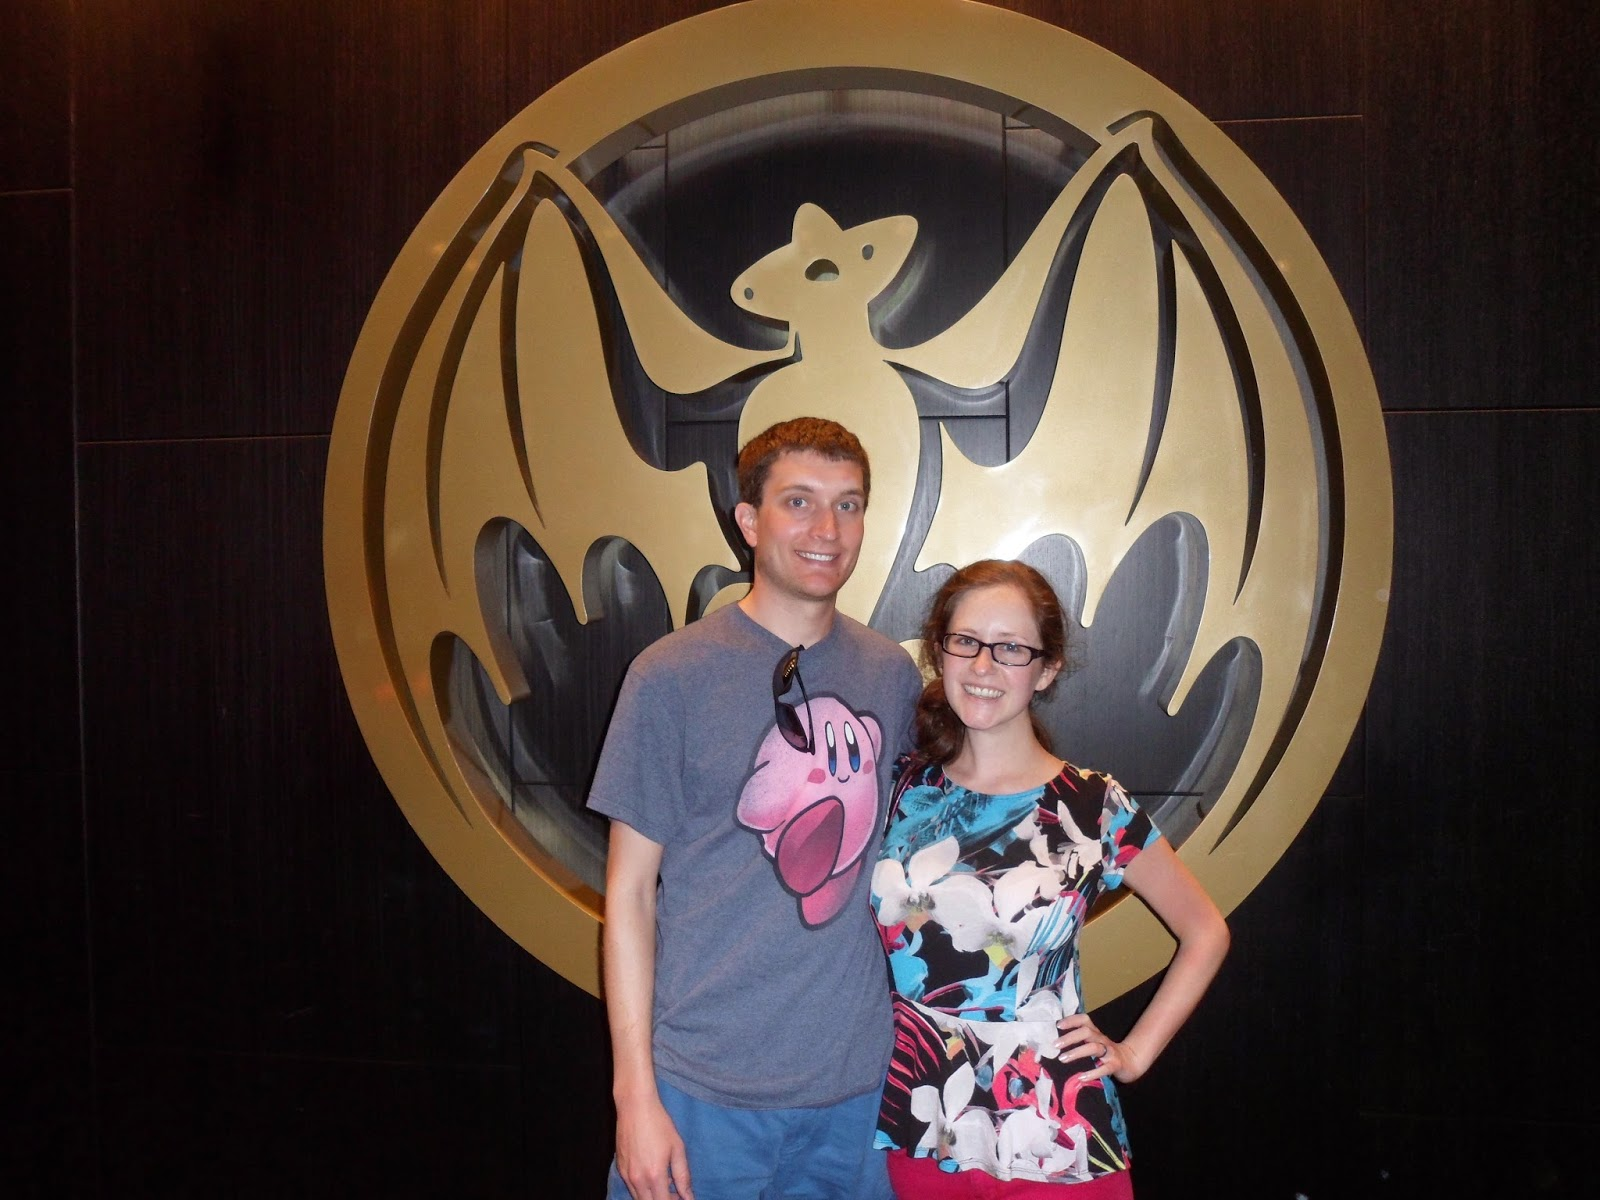 at the end of our tour of Casa Bacardi on our Puerto Rican honeymoon